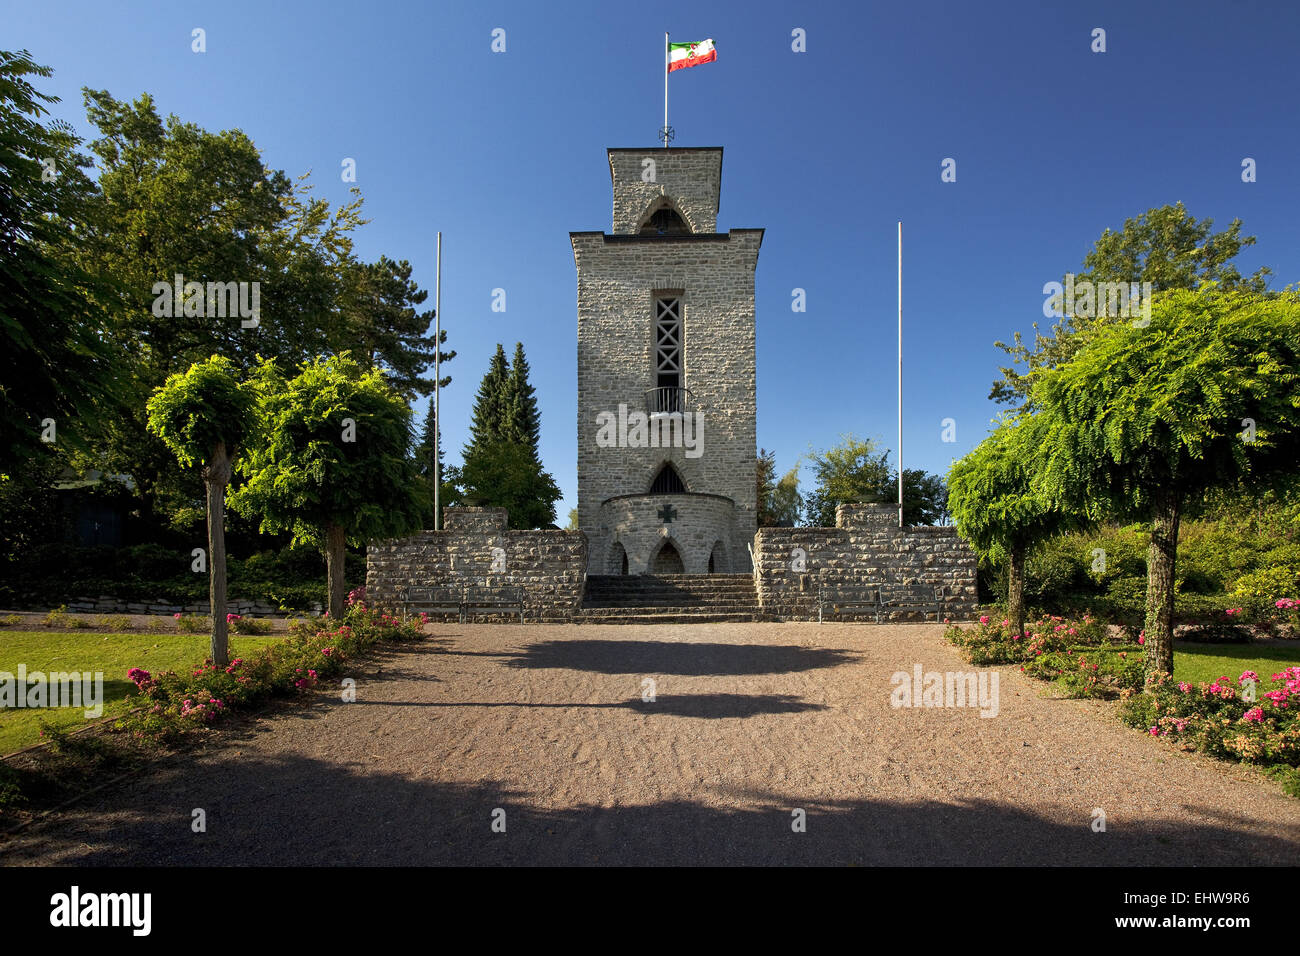 The tower of the memorial in Sundern. - Stock Image